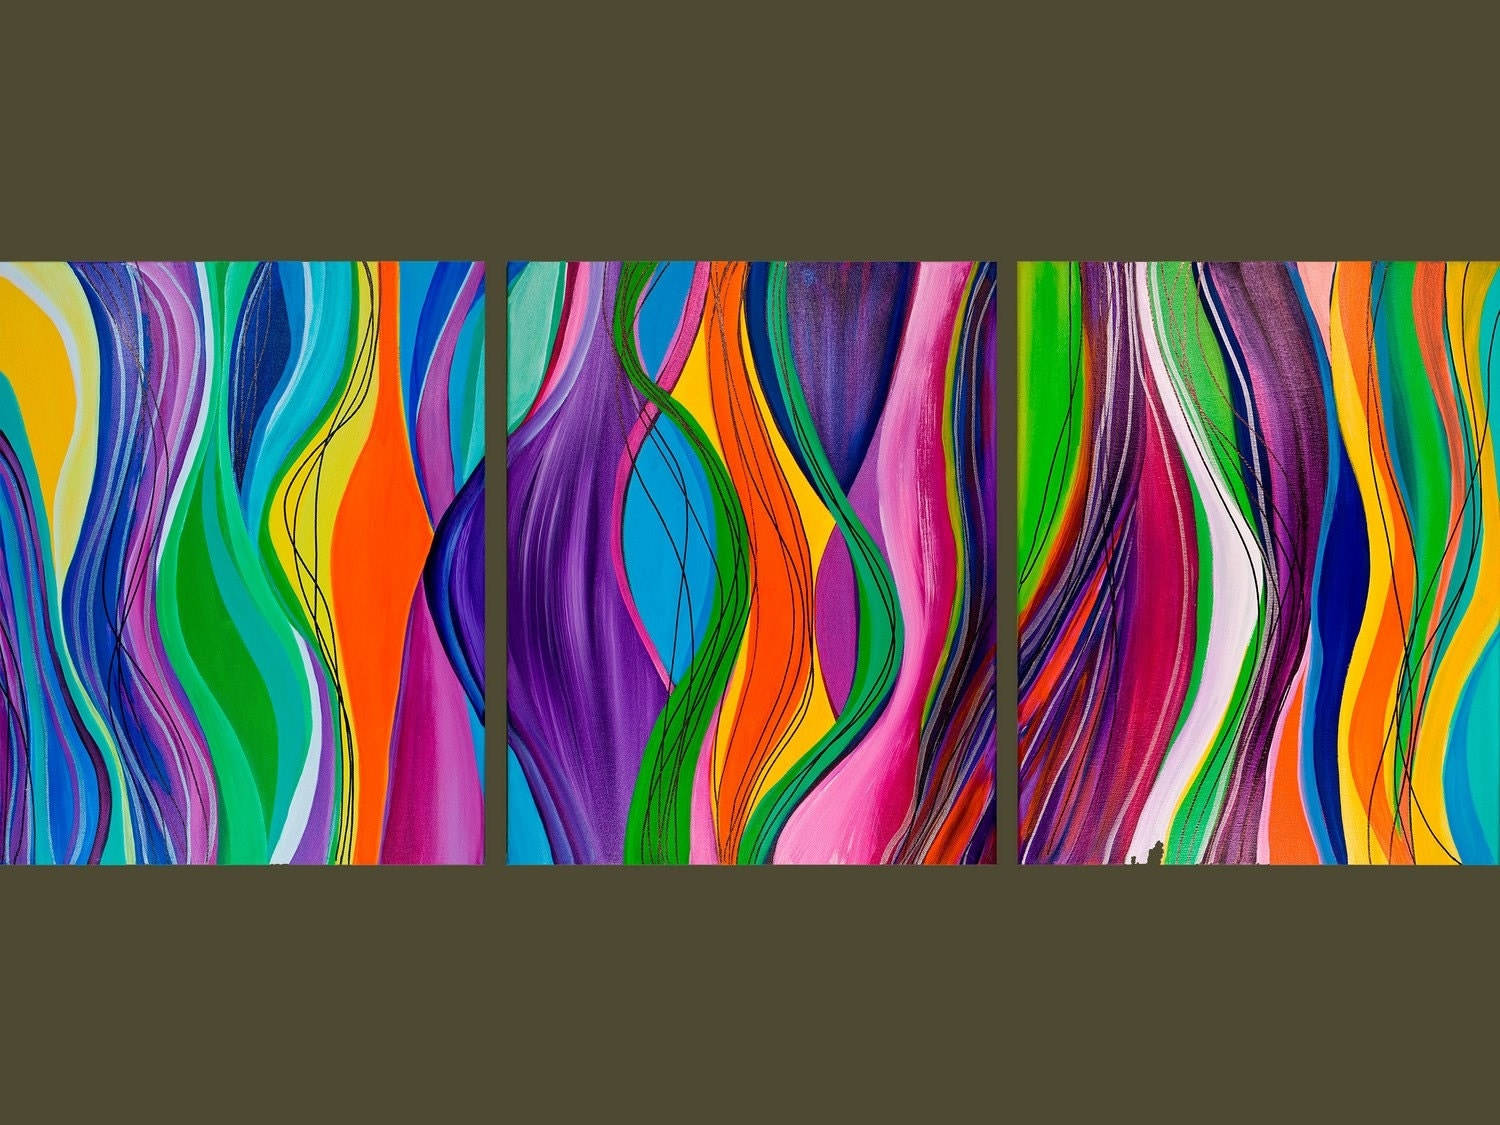 Line Art Painting : Original modern art line movement abstract contemporary